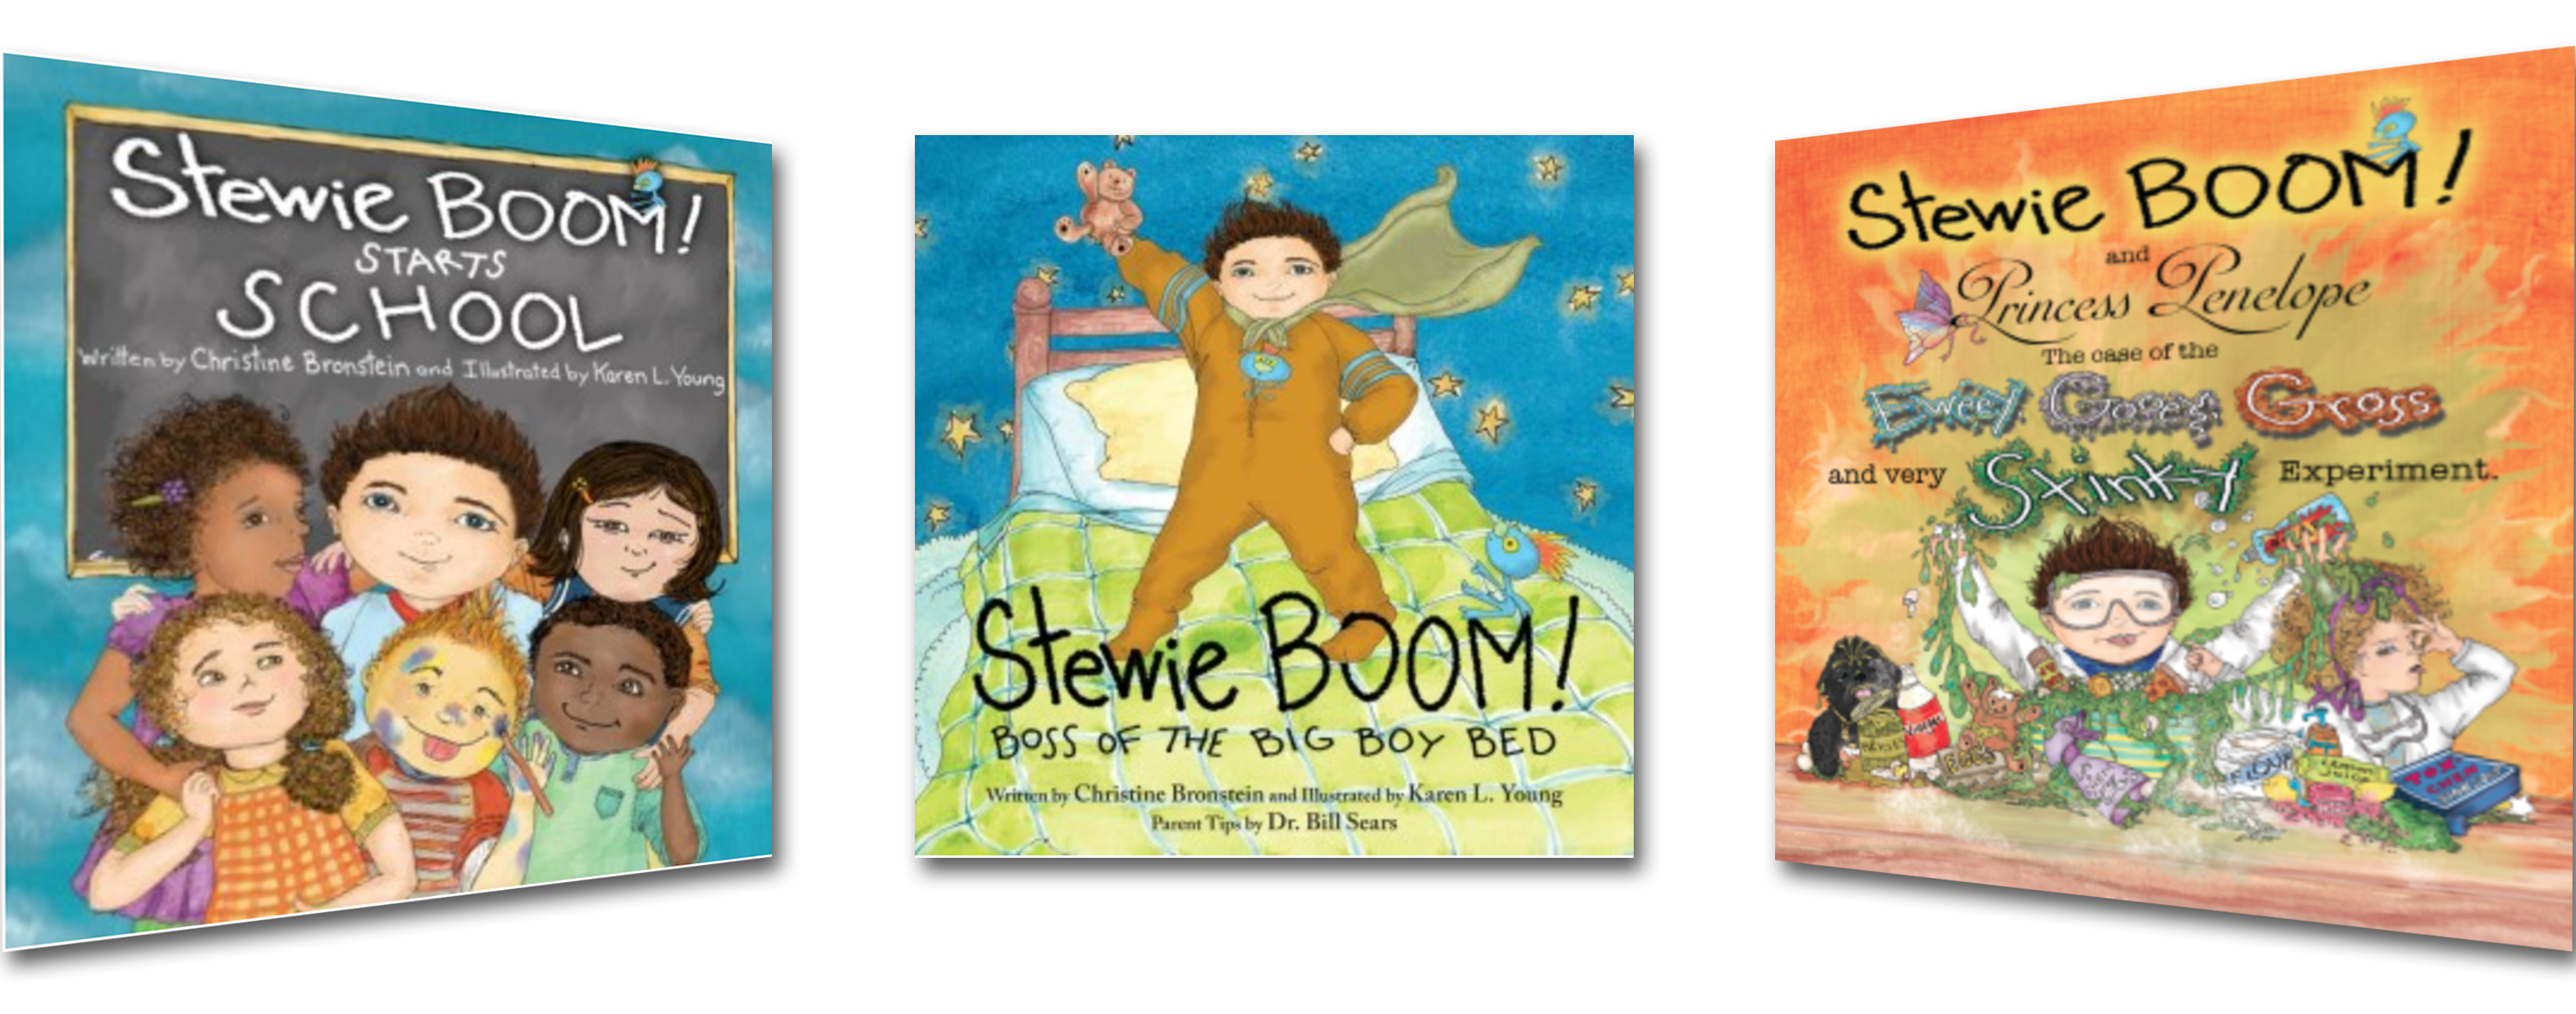 _-stewie-boom-book-covers-high-res-1